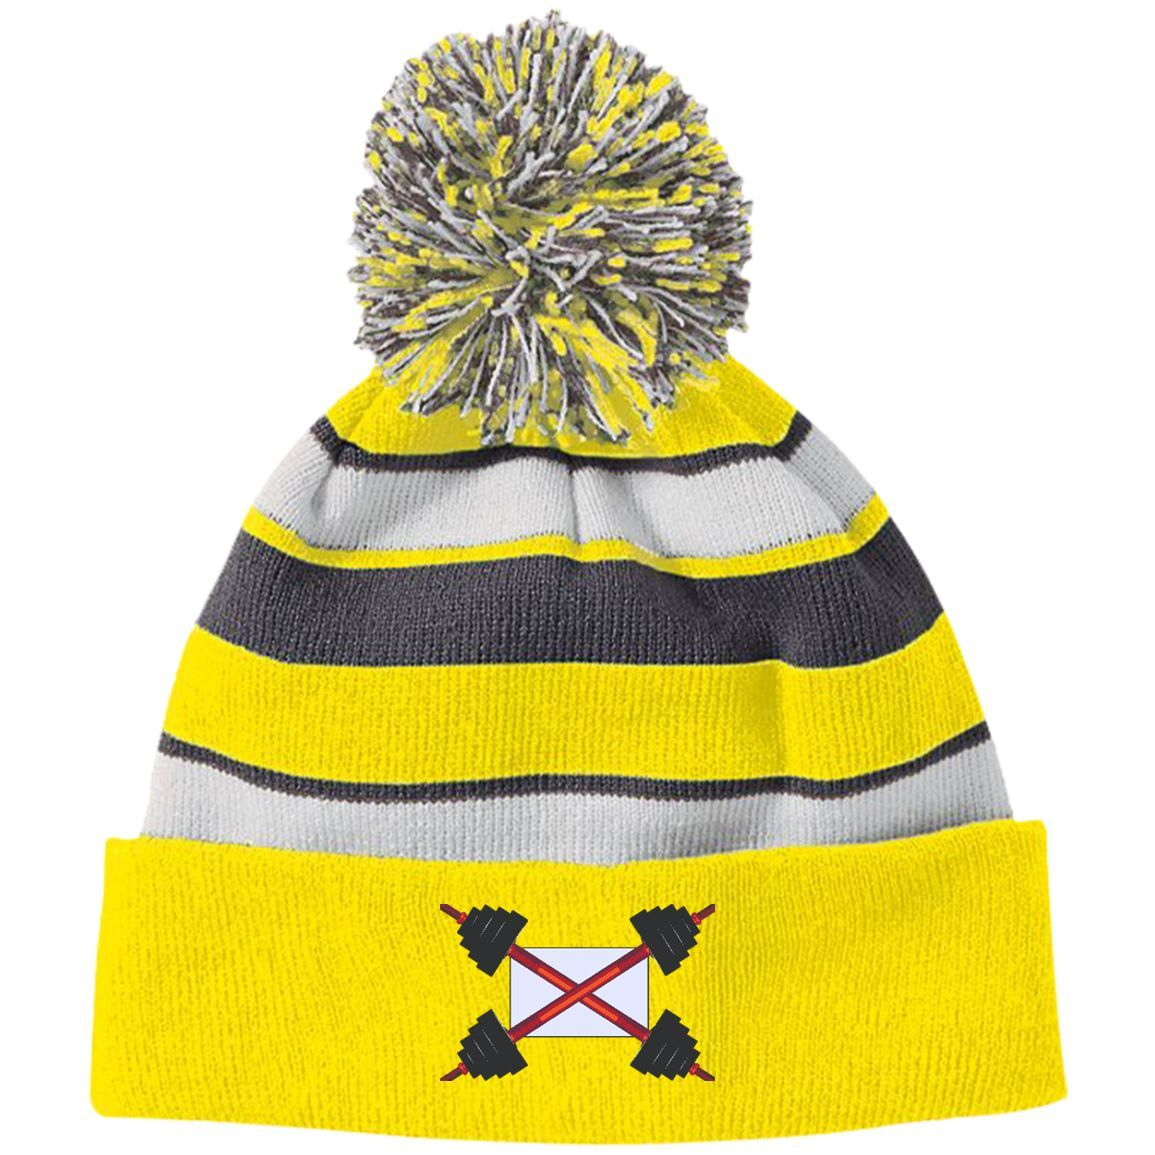 aad4d05e6f4 volkswagen vw hat 223835 Holloway Striped Beanie with Pom